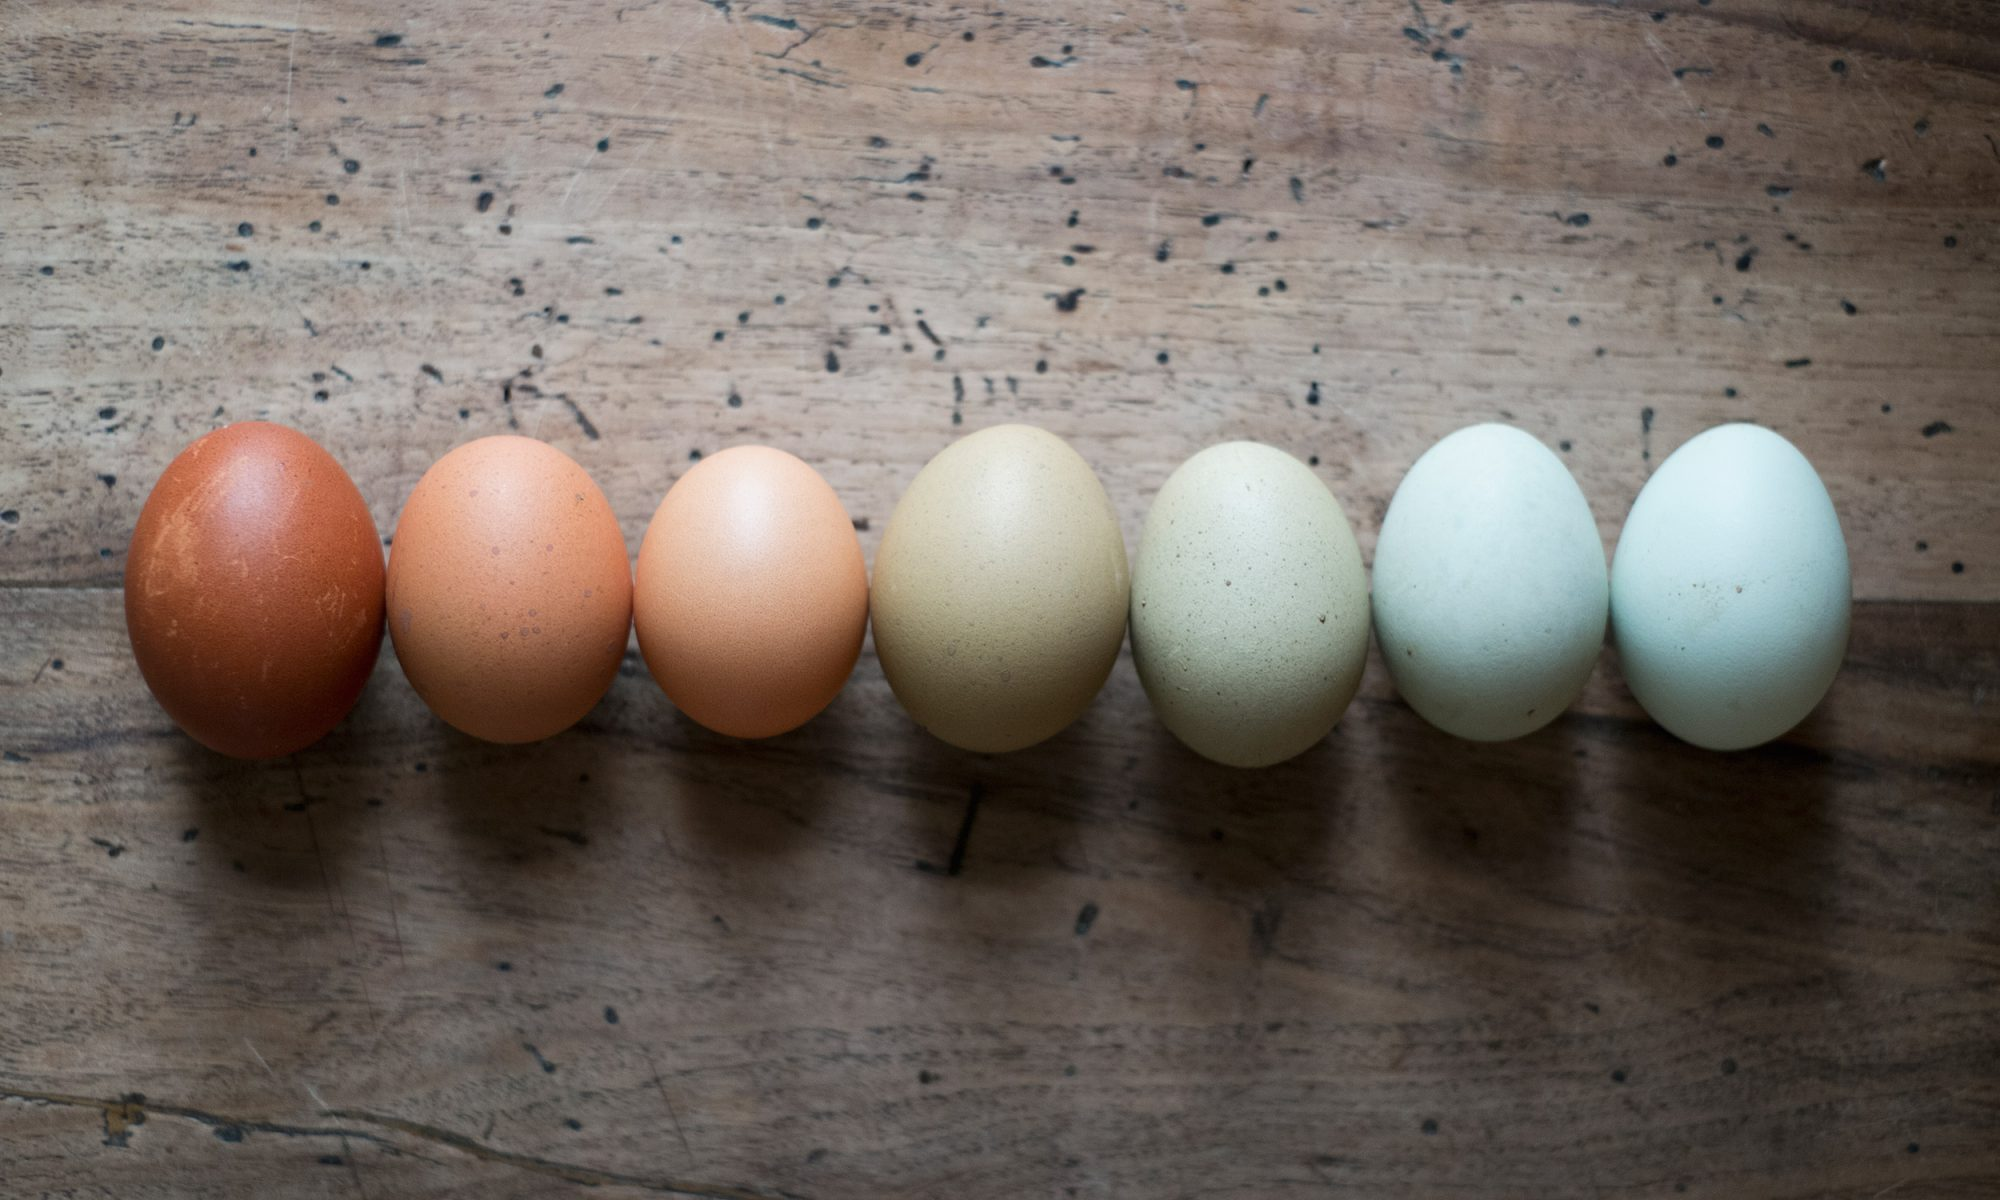 EC: What's the Difference Between Brown and White Eggs?